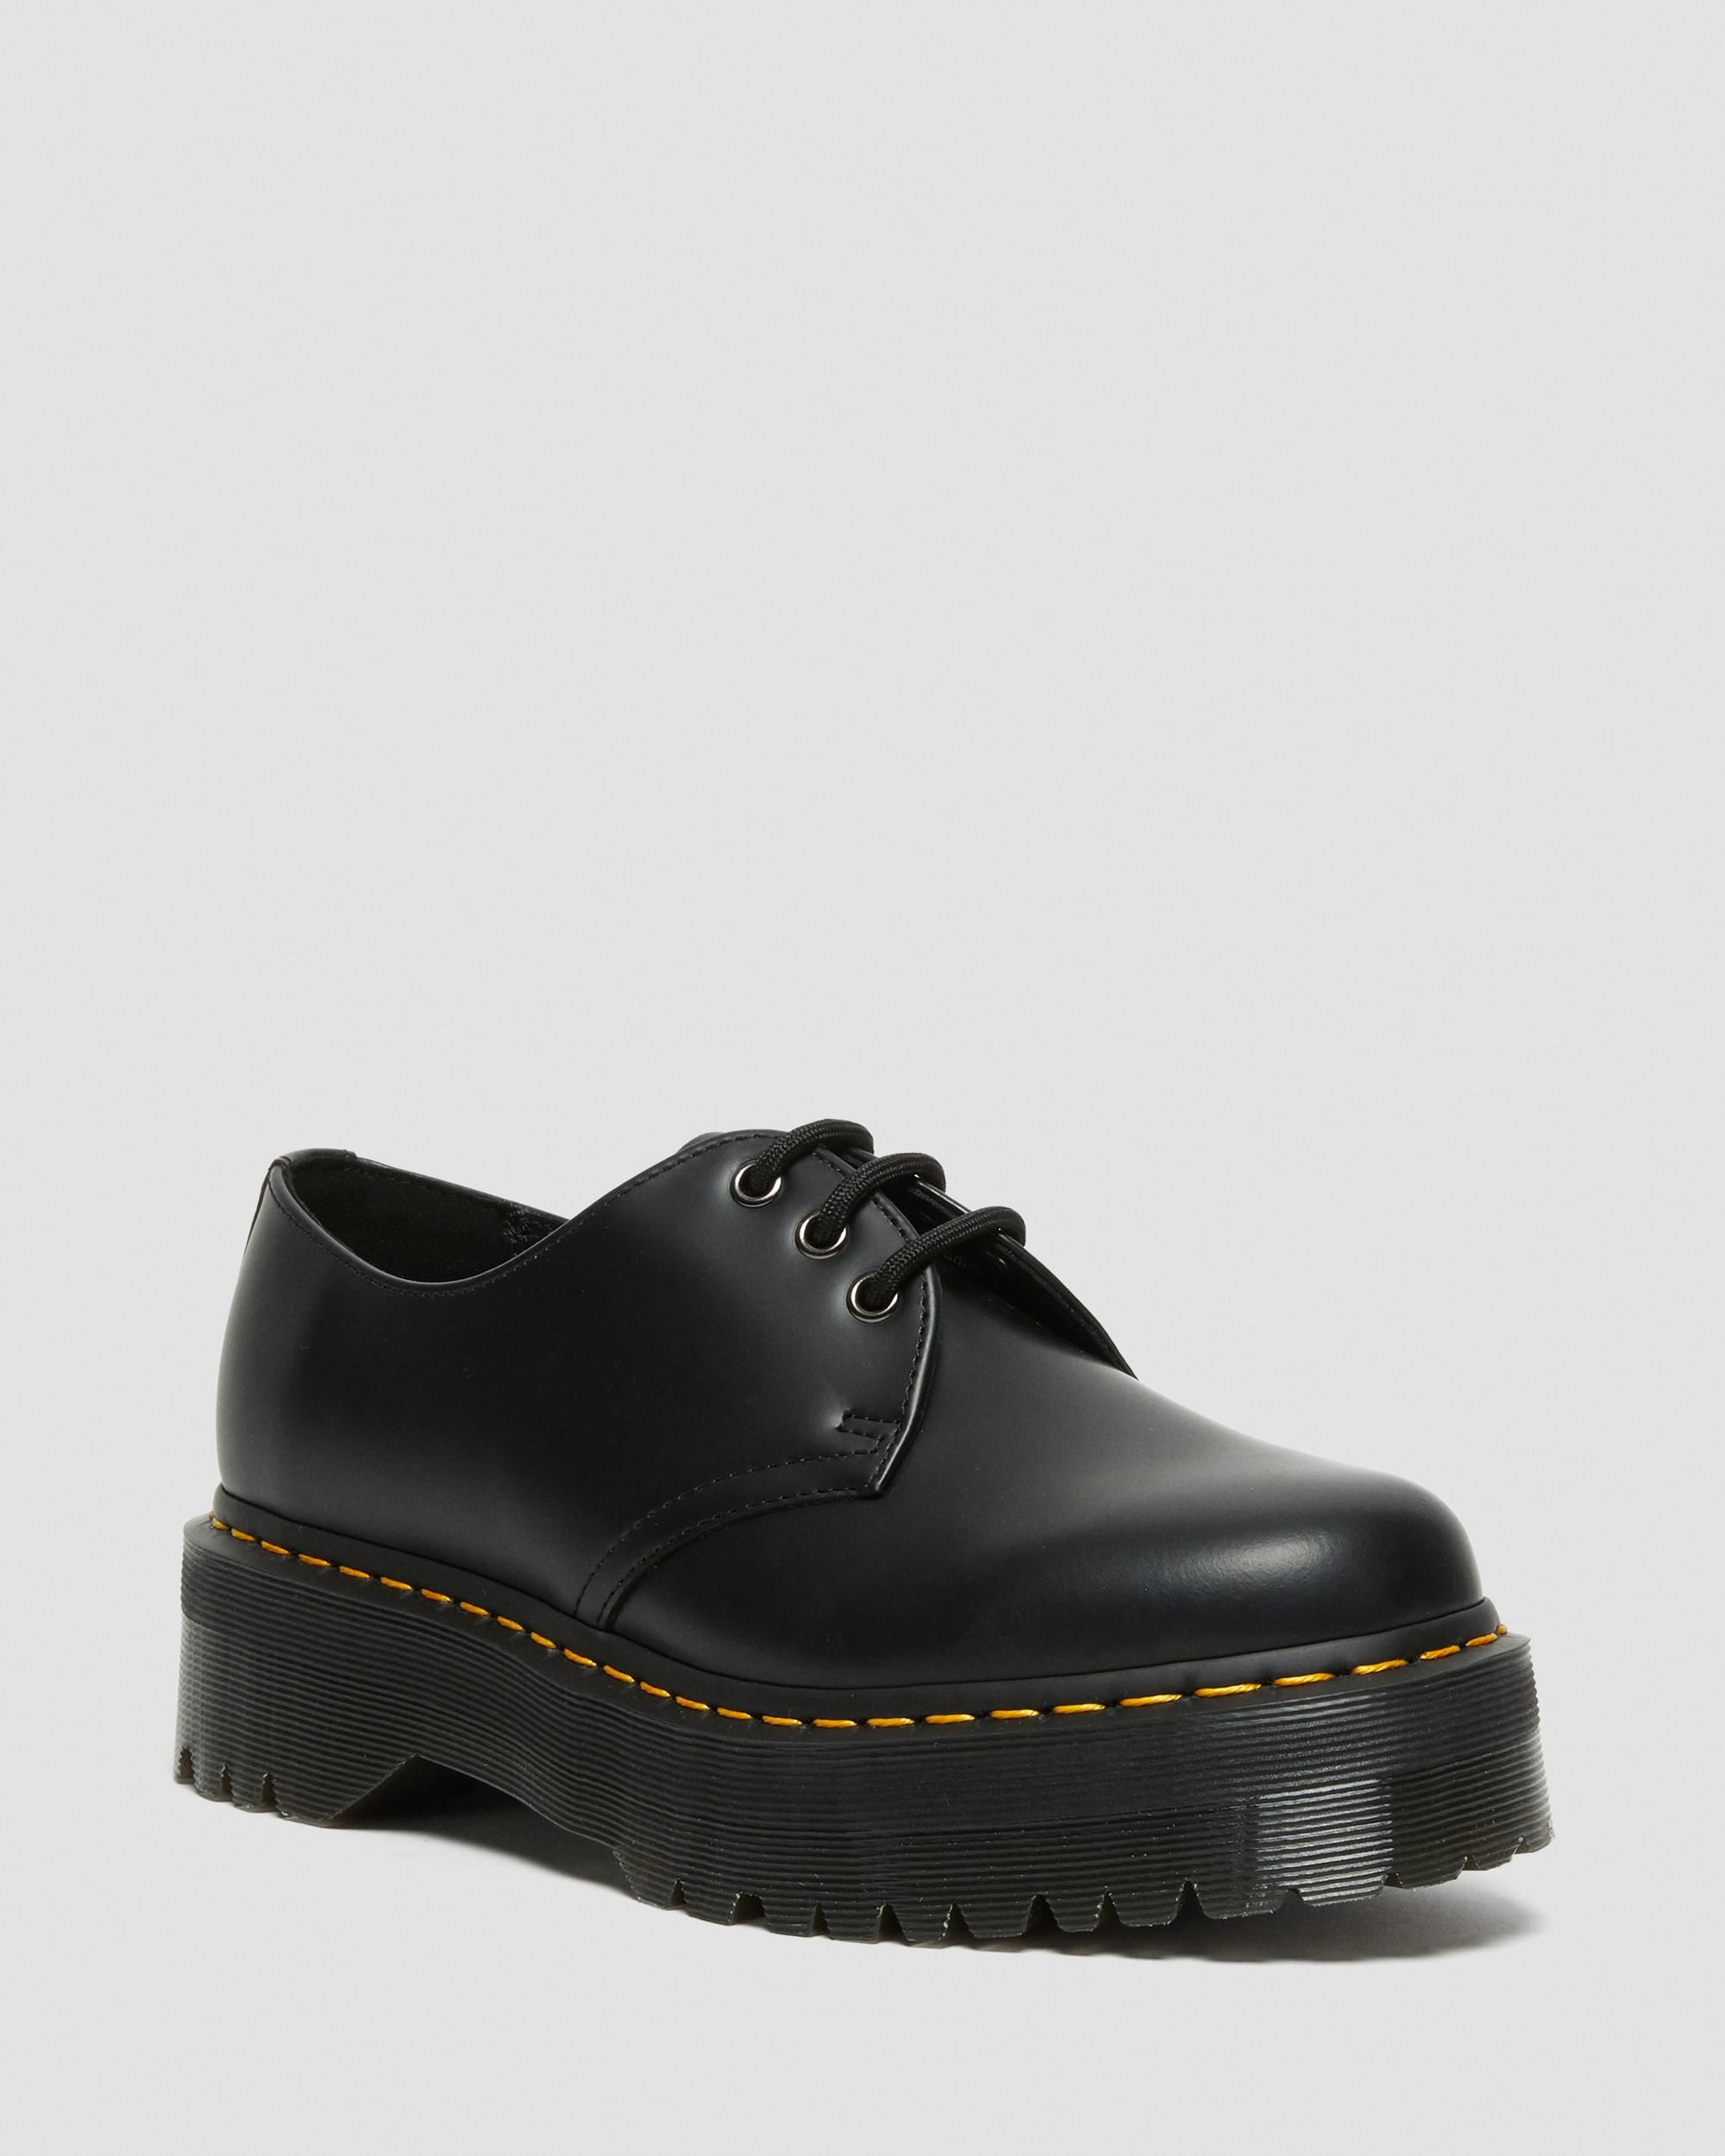 DR MARTENS 1461 SMOOTH LEATHER PLATFORM SHOES